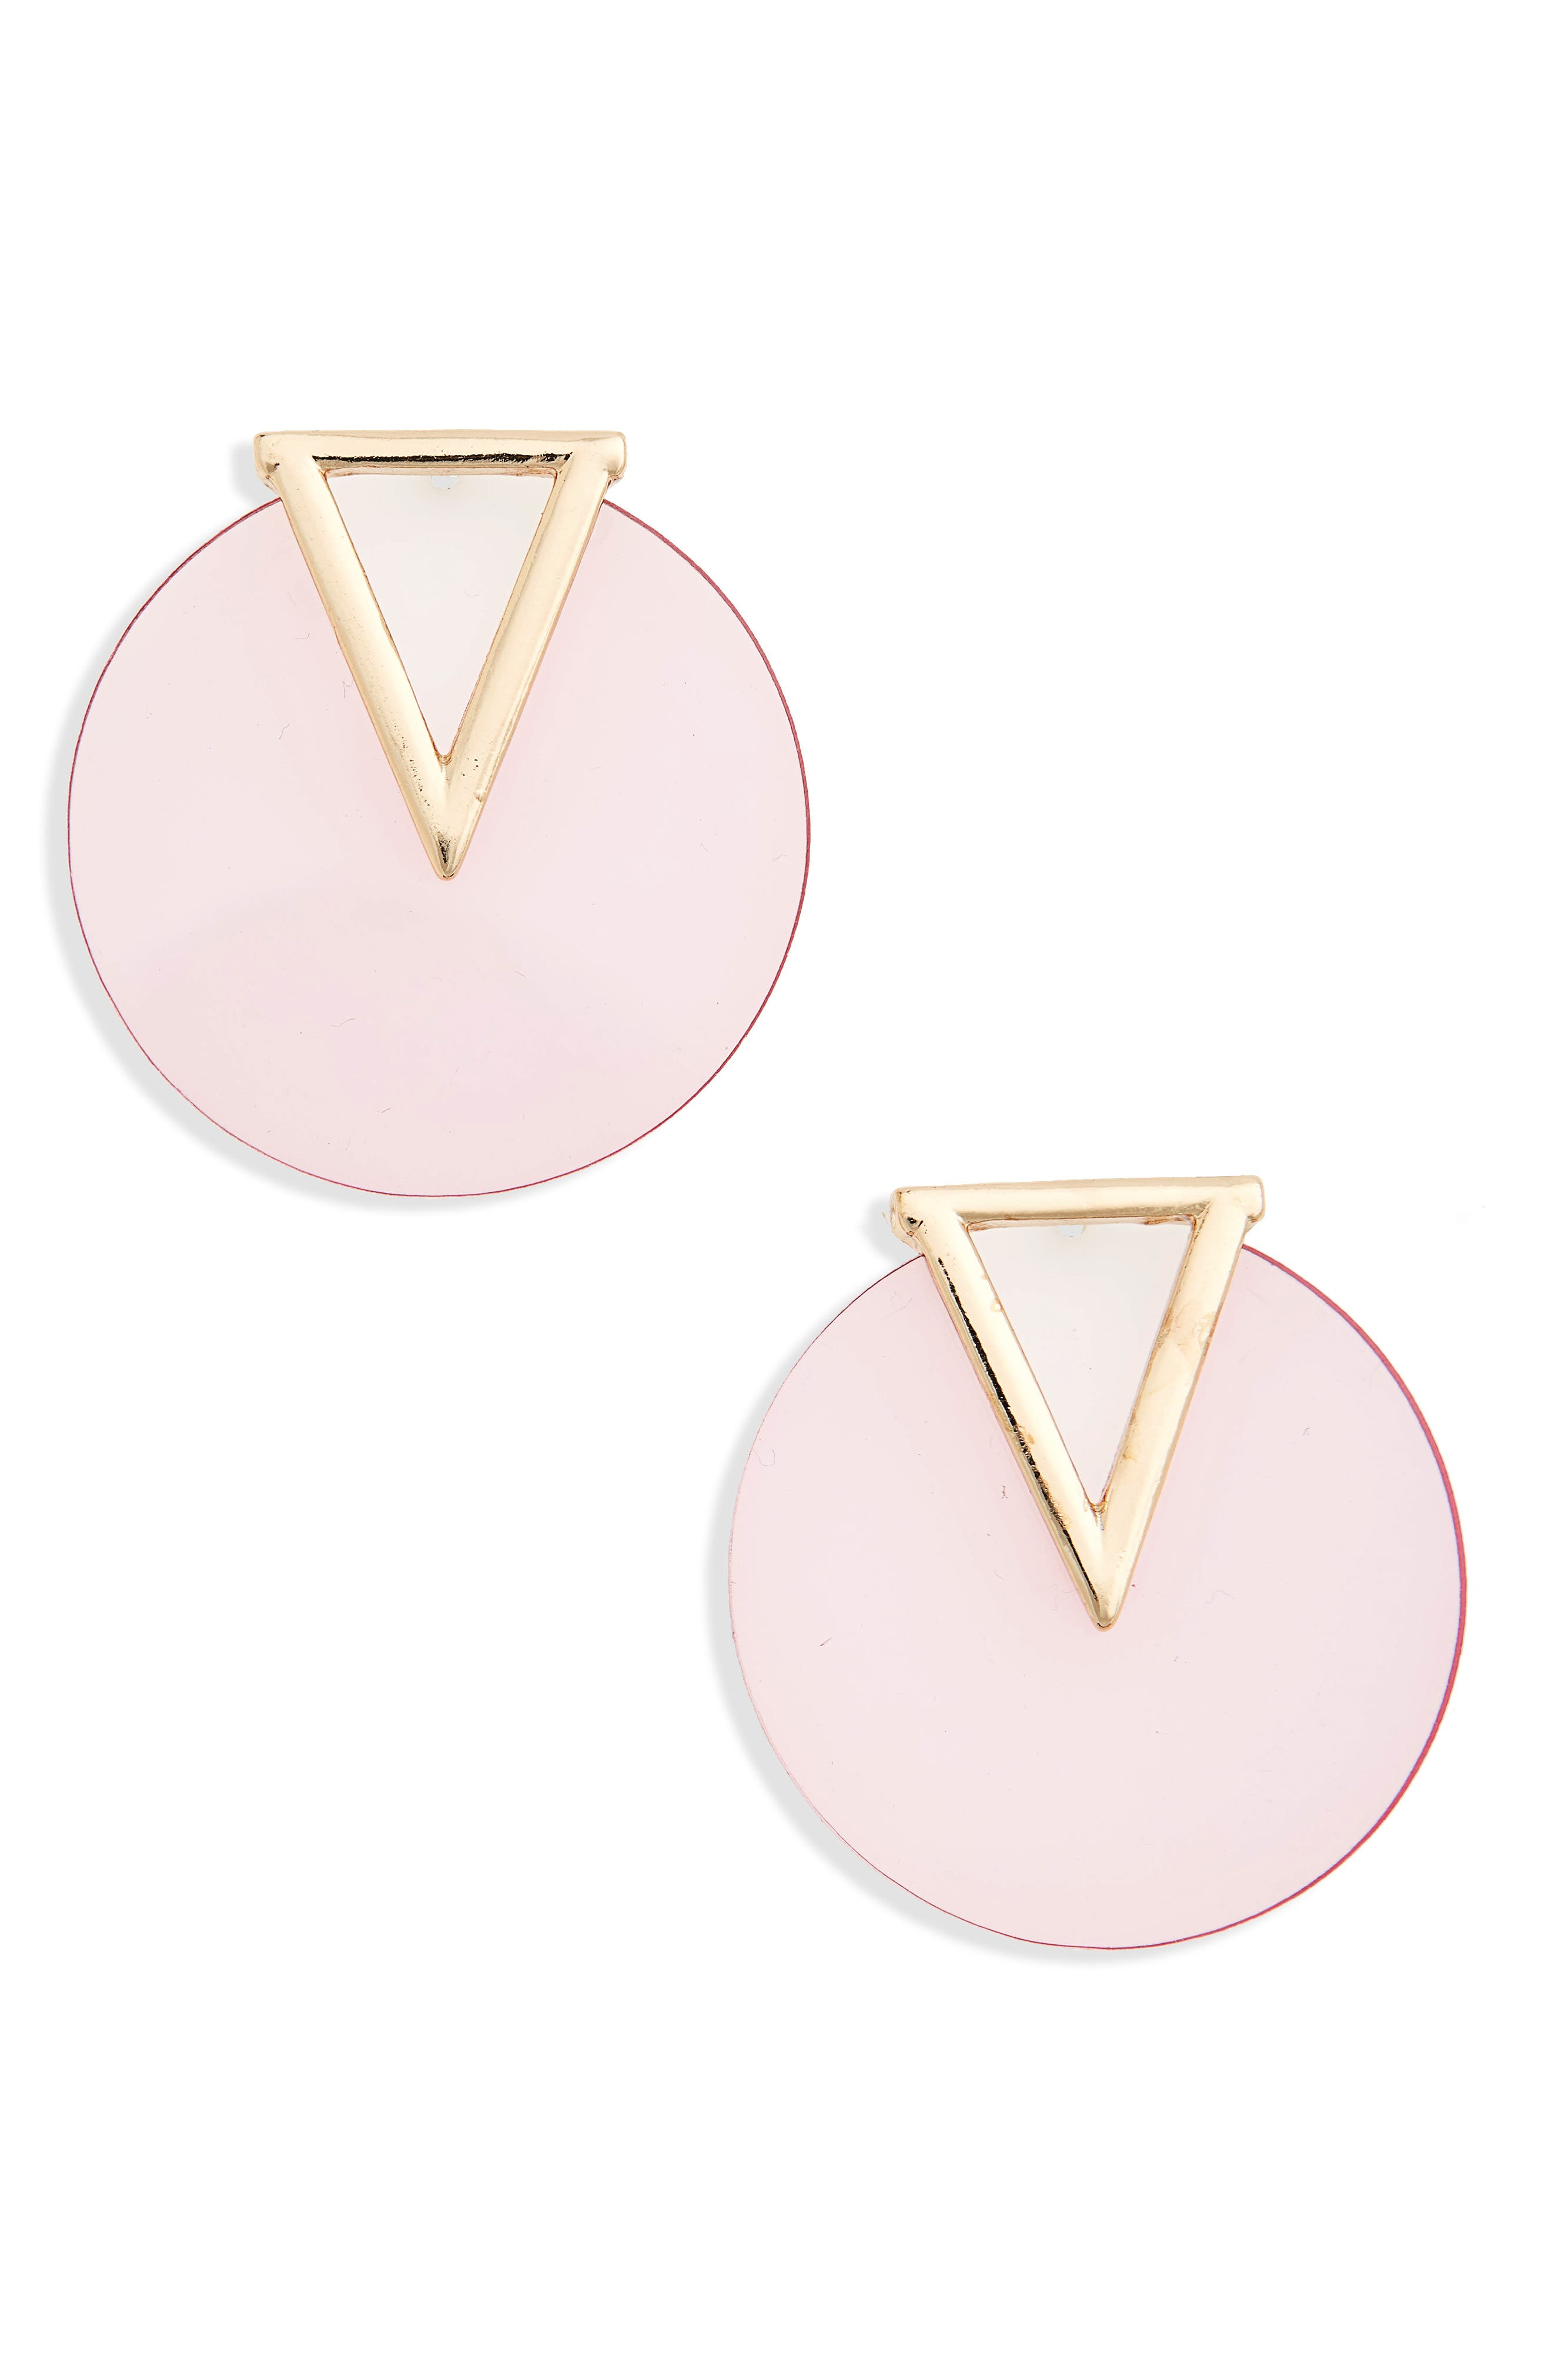 Triangle & Circle Statement Earrings,                         Main,                         color, Pink/ Gold